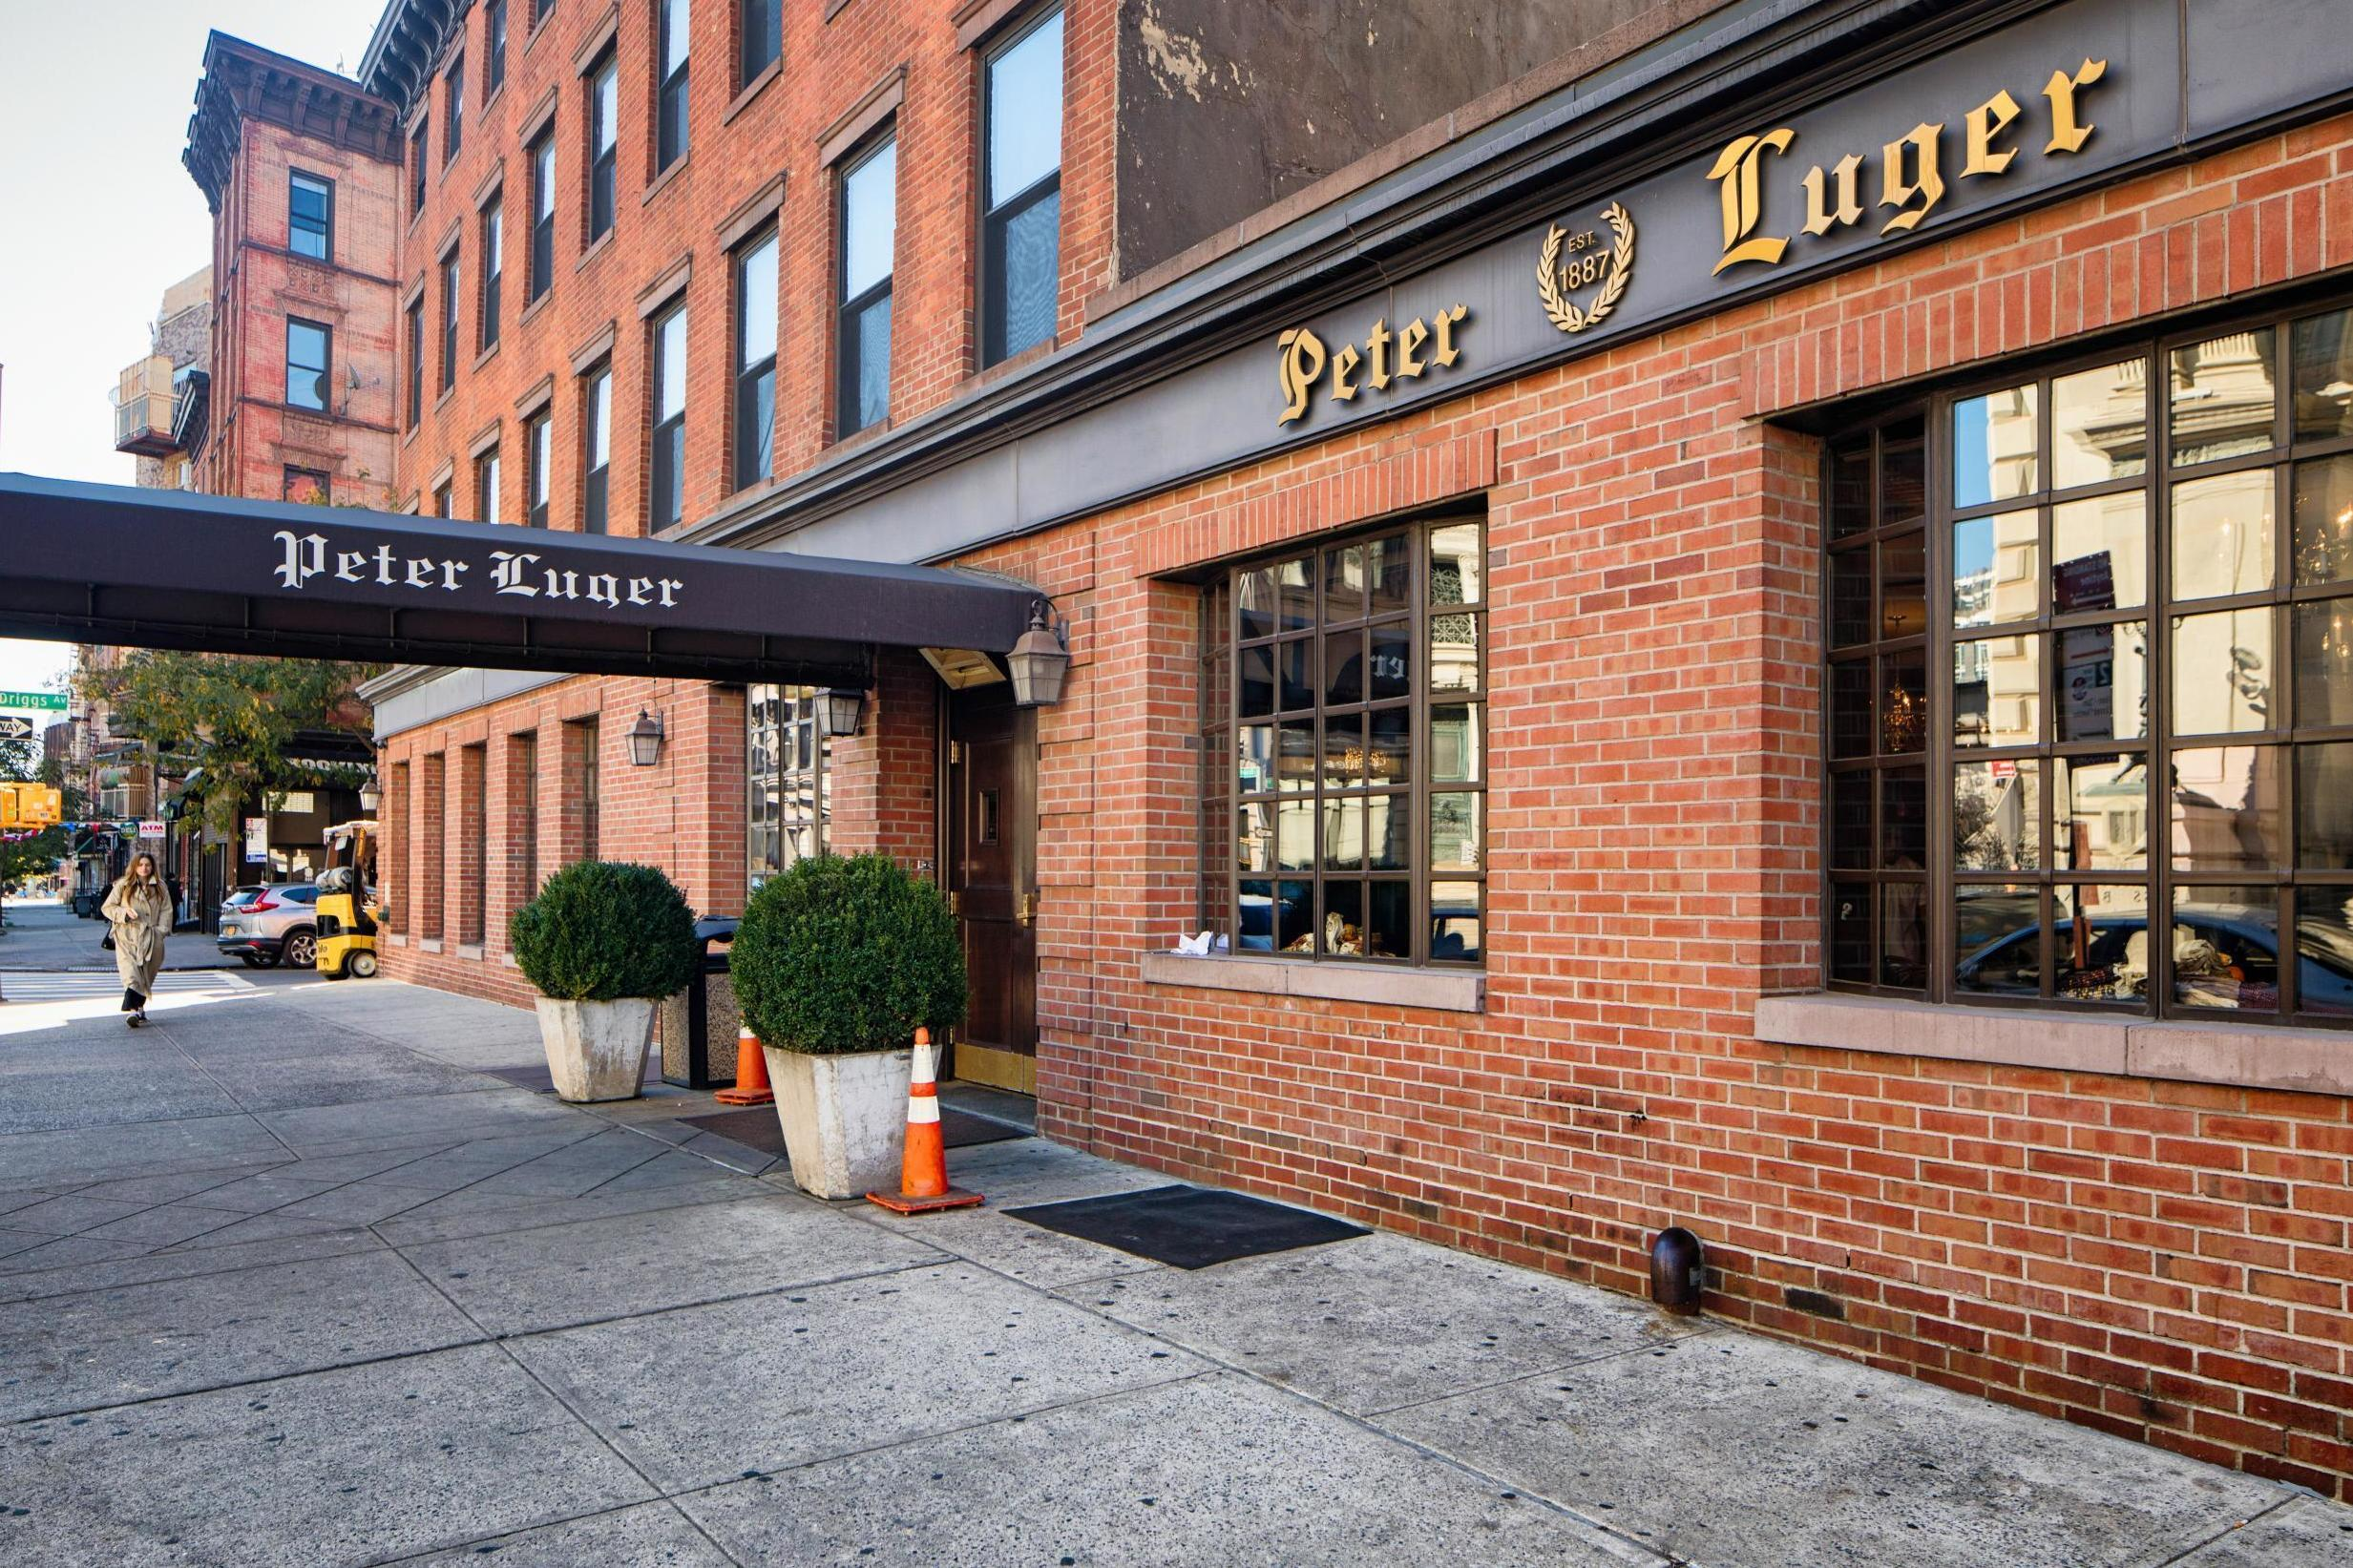 Peter Luger responds to scathing zero-star New York Times review of iconic steakhouse 1